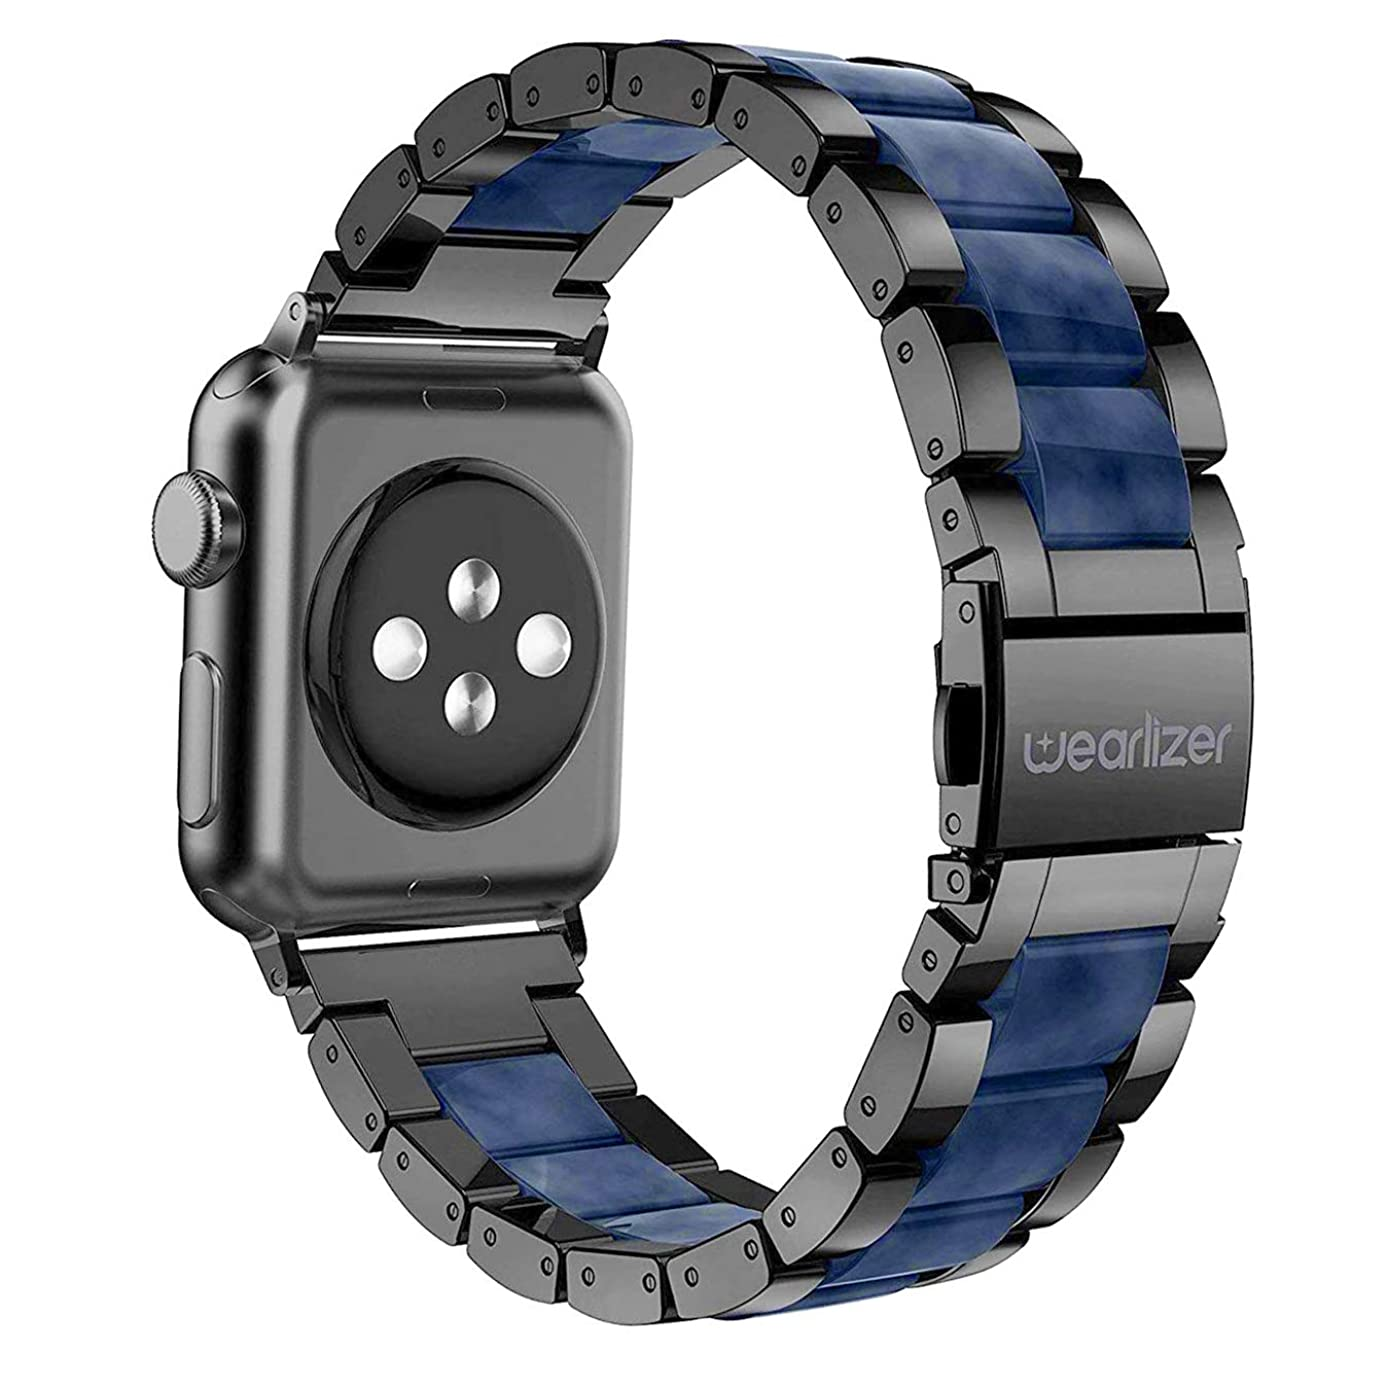 Wearlizer Black Blue Bands Compatible with Apple Watch Straps 42mm 44mm iWatch Mens Womens Replacement Lightweight Central Resin with Stainless Steel Edge Wristbands Strap Bracelet Series 4 3 2 1